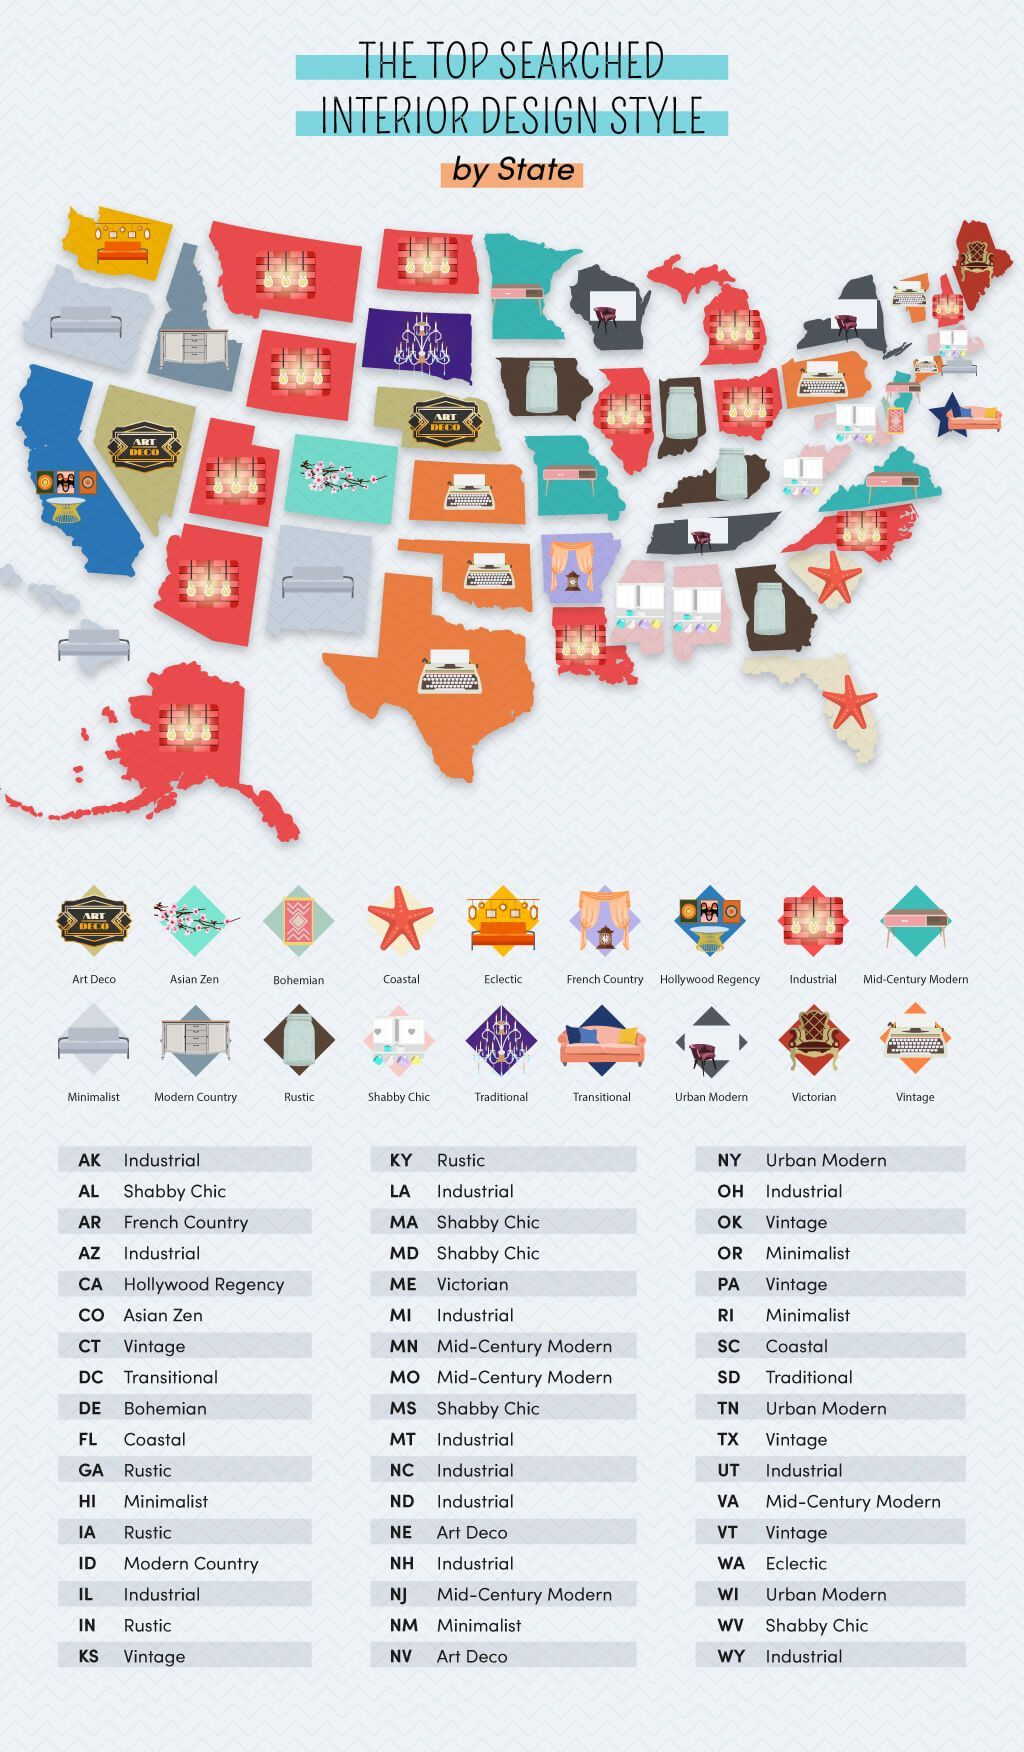 Joybird most popular style by state. Visit source link at the end of this article for more information.